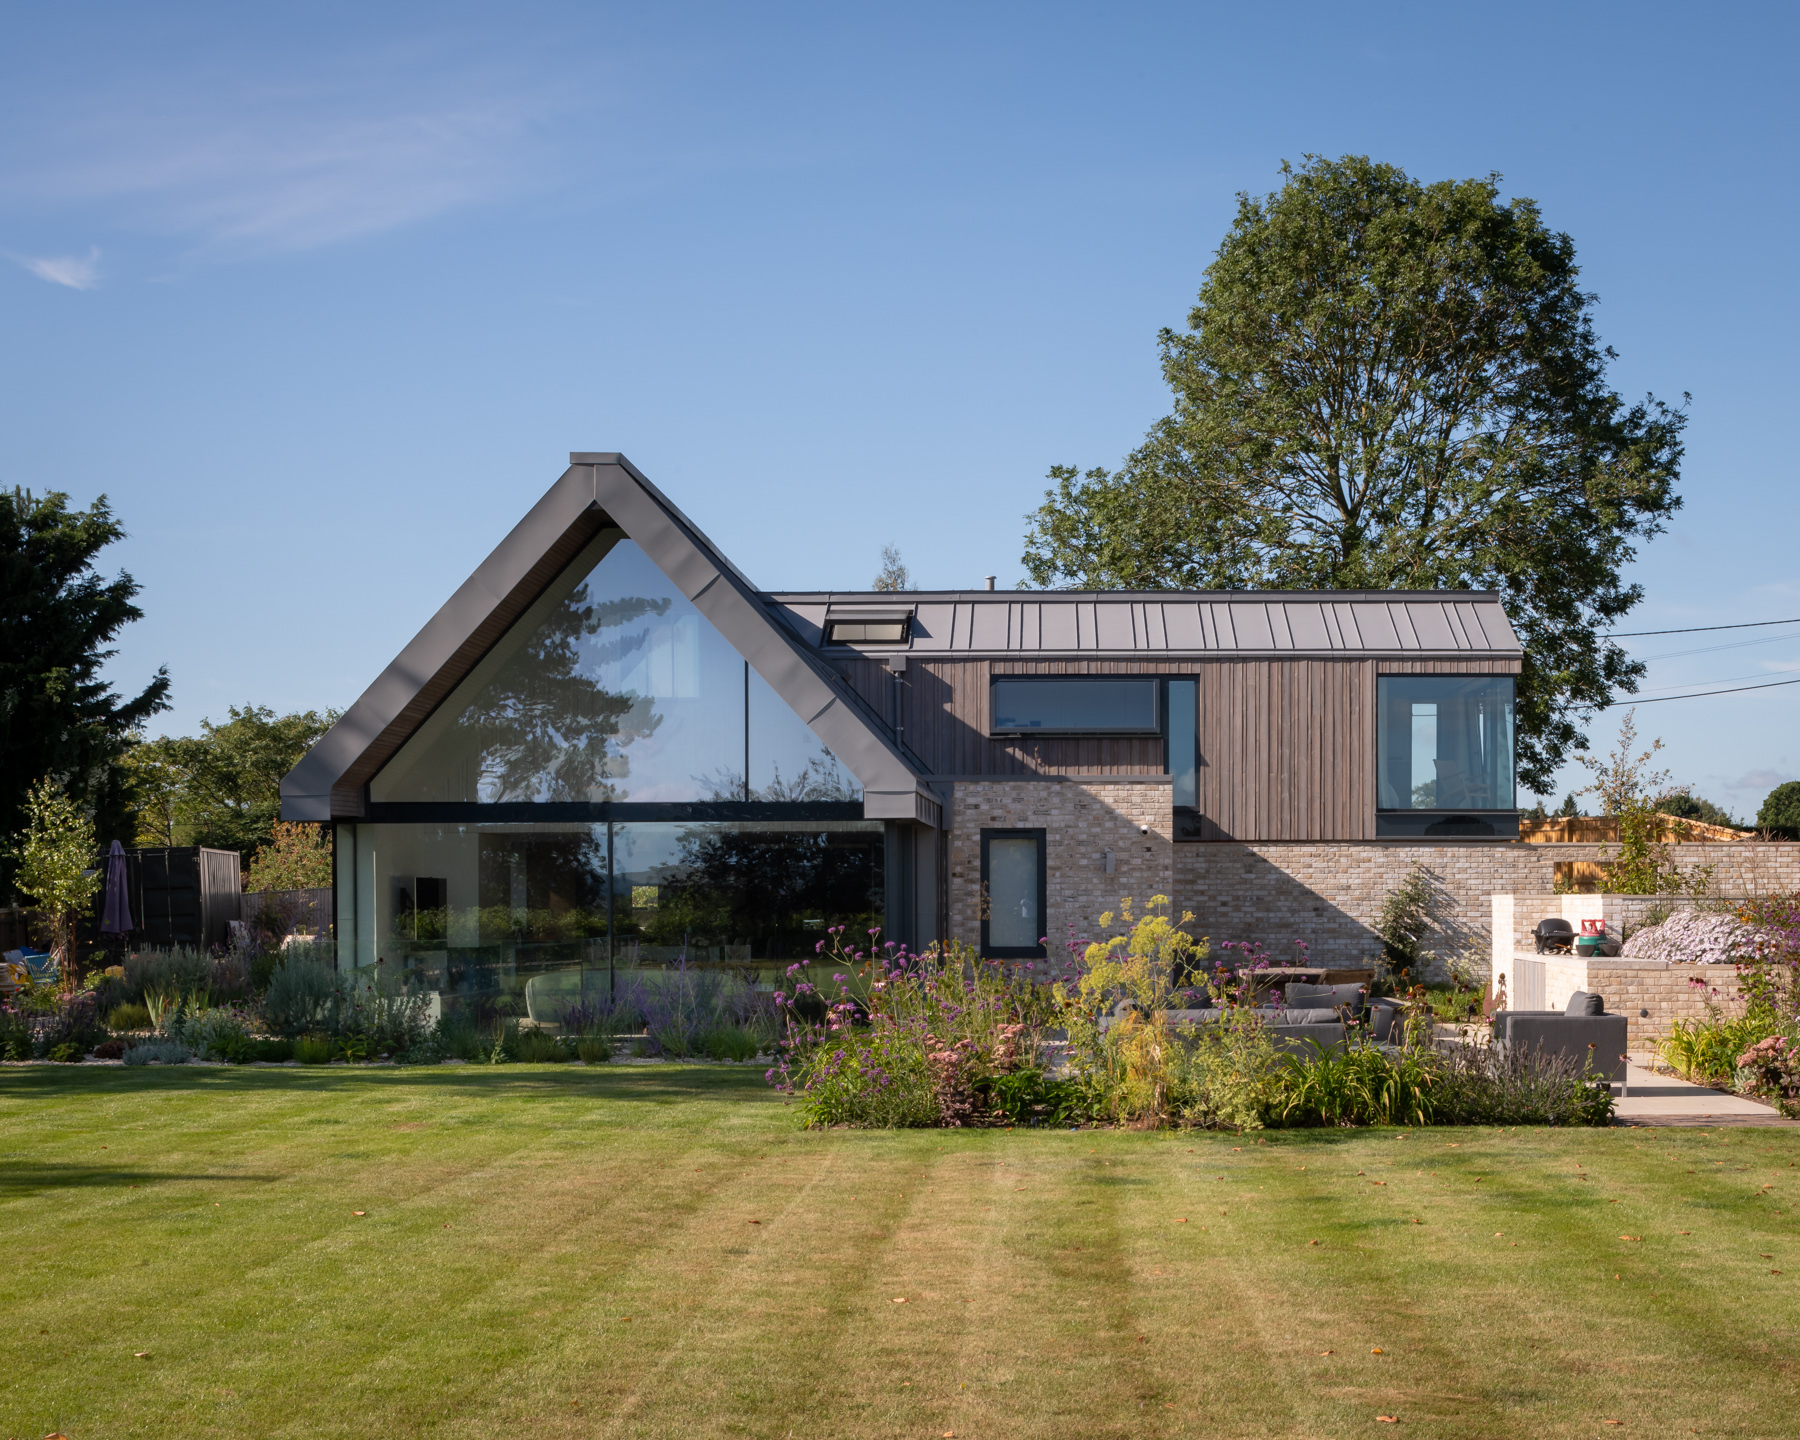 Contemporary new build home with aluminium structural glazed facade